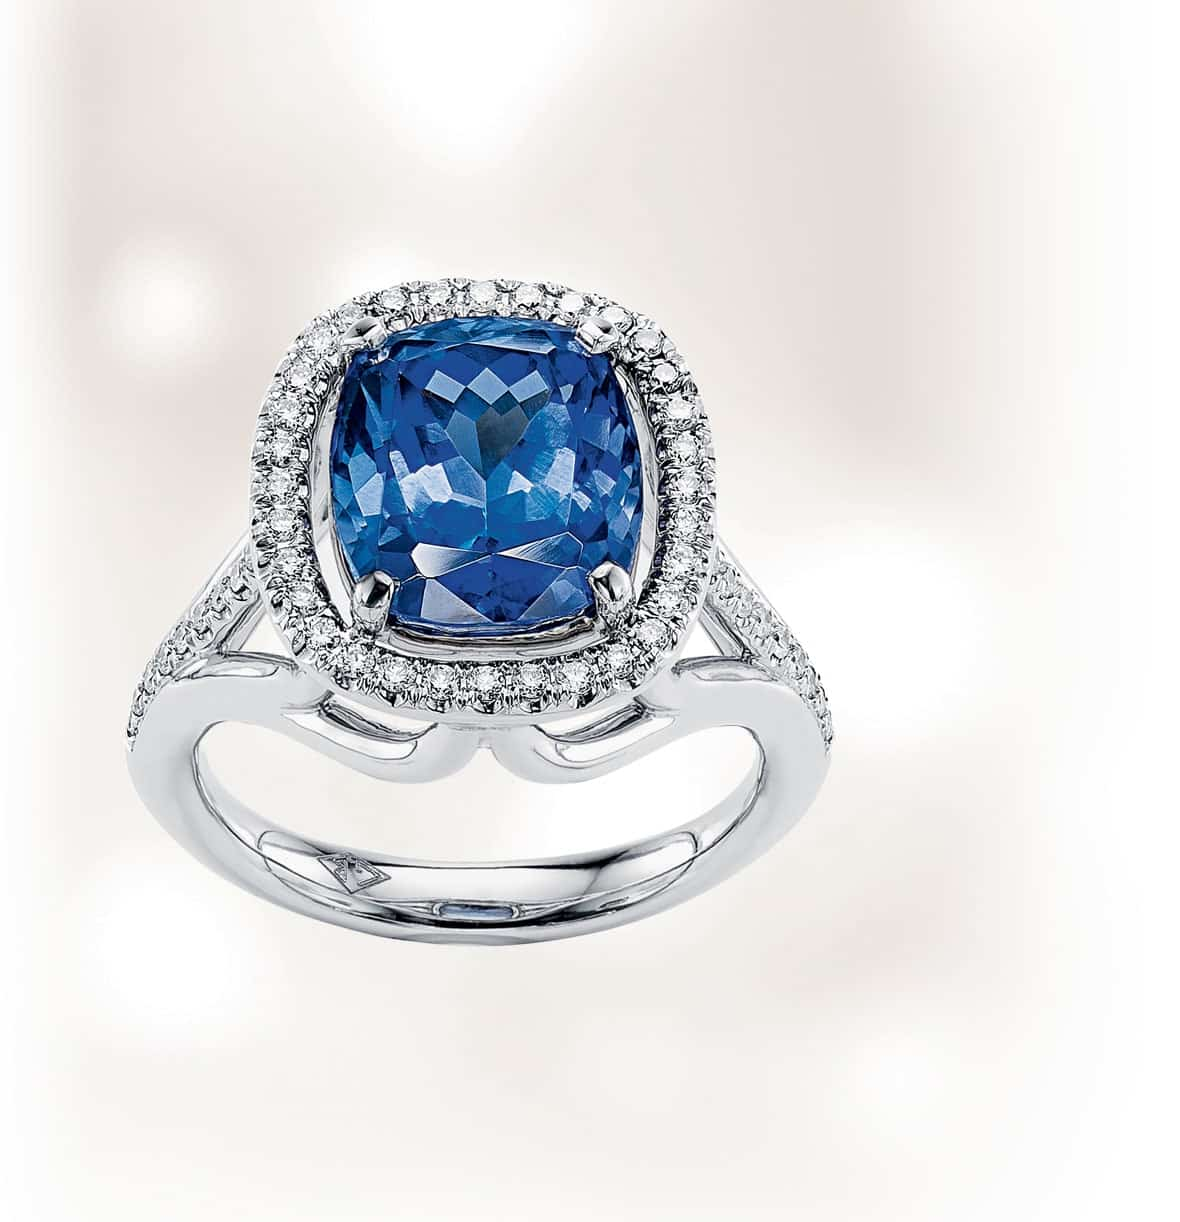 Lionel-Meylan-Creations-Bague-Tanzanite-110934-Lionel-Meylan-Vevey-highlight